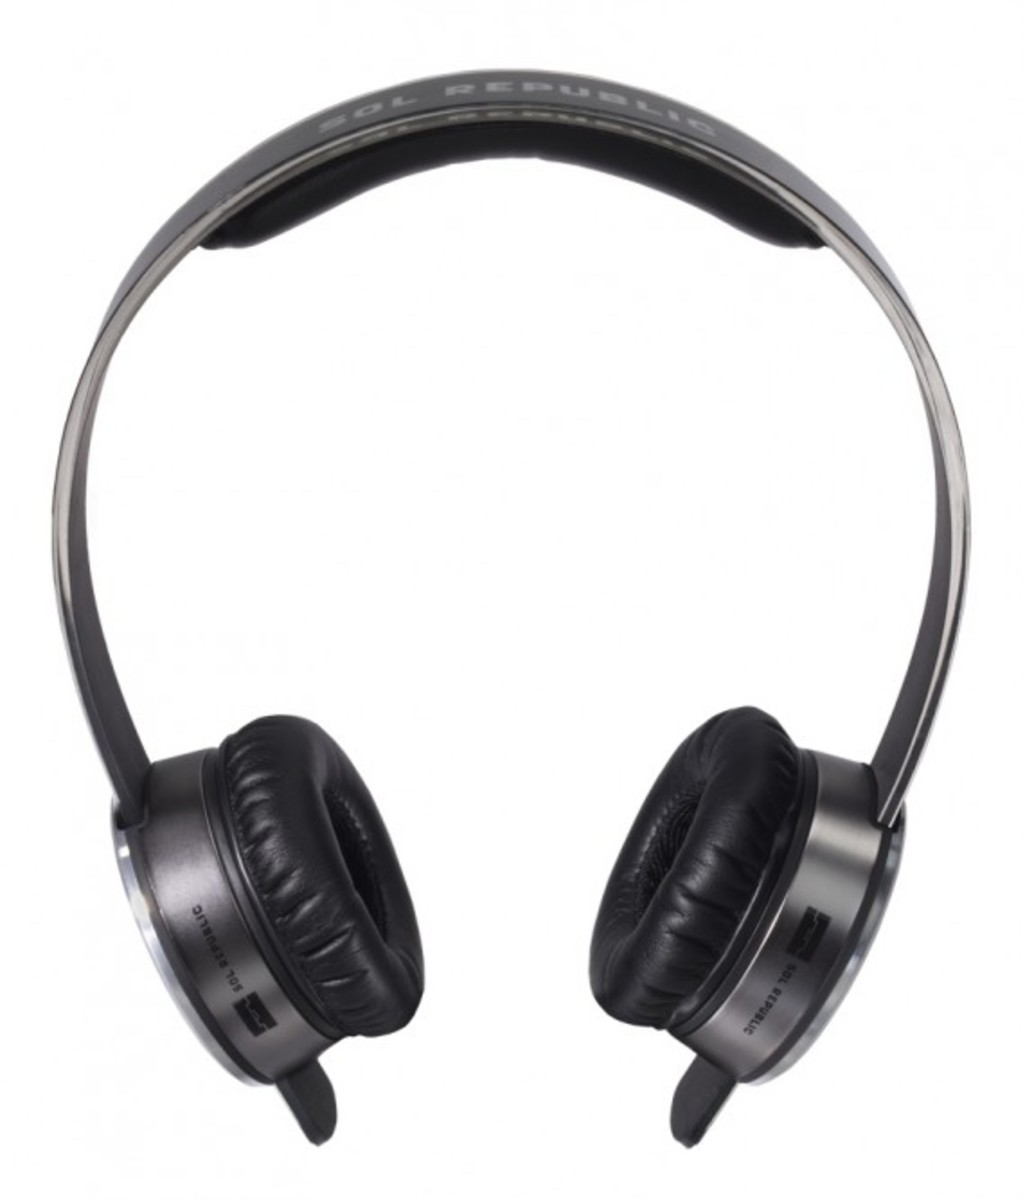 sol-republic-tracks-headphones-silver-02